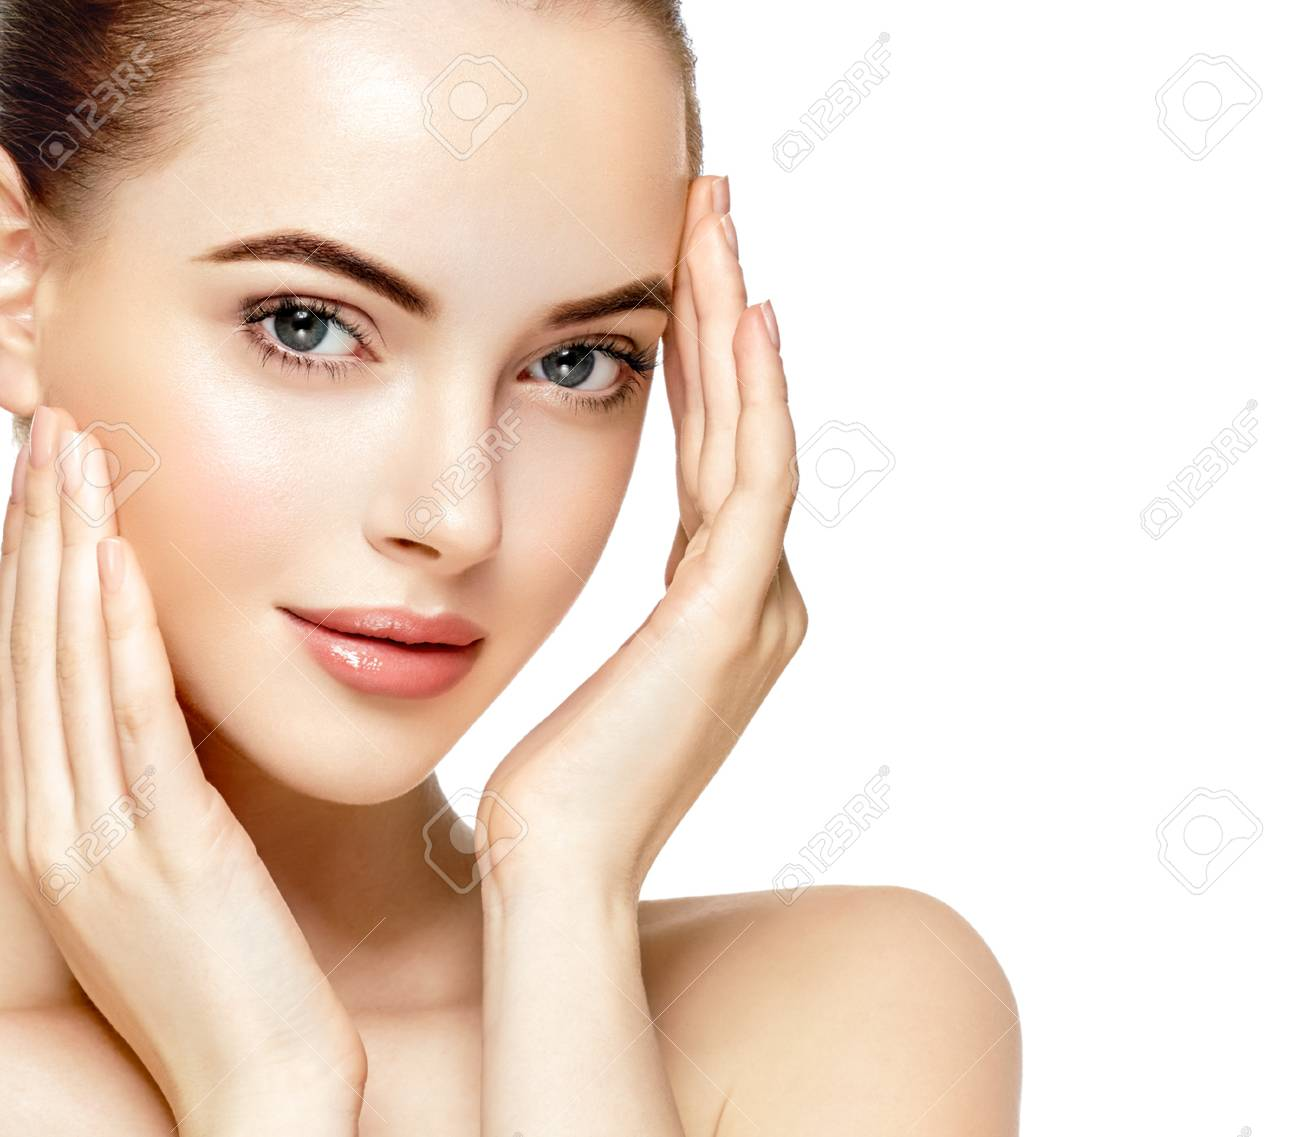 Beautiful Woman Face Portrait Beauty Skin Care Concept Fashion Stock Photo Picture And Royalty Free Image Image 79159714